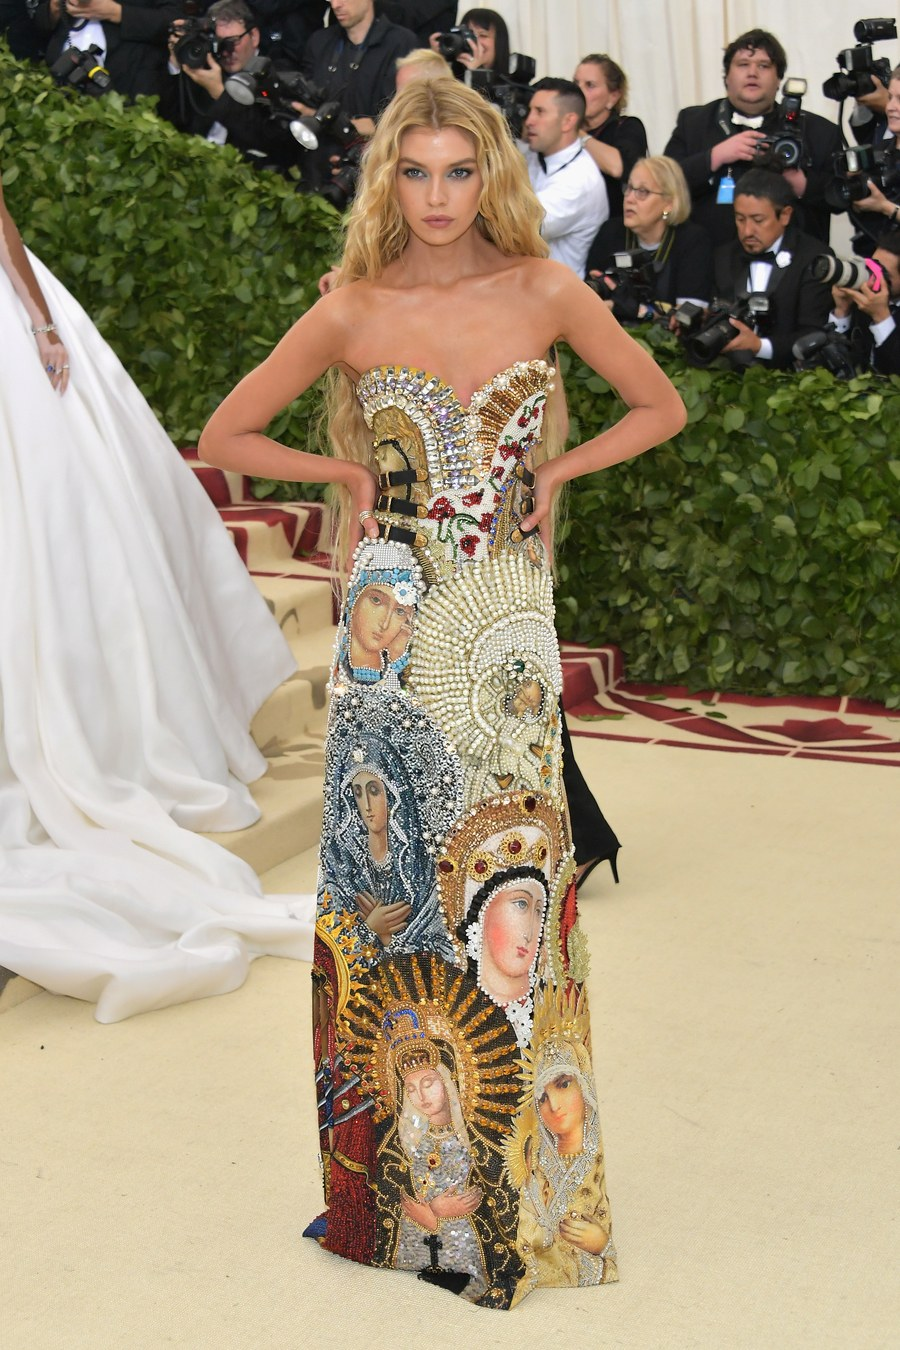 Met Gala 2018: Heavenly Bodies, Fashion and the Catholic Imagination